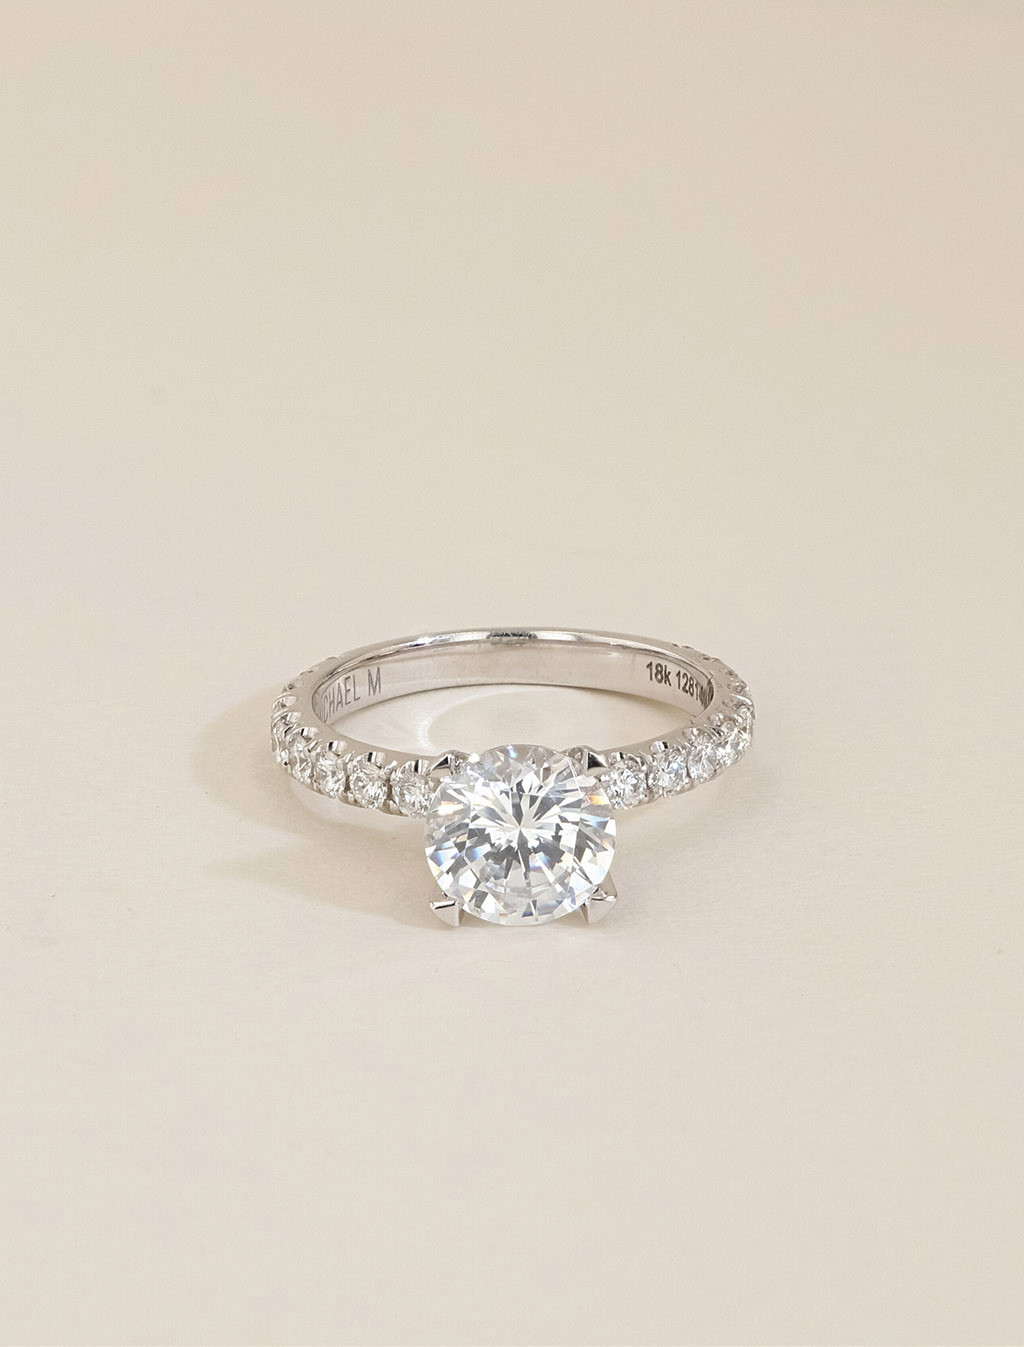 Michael M 18K Gold Round Pavé Diamond Engagement Ring Setting front view